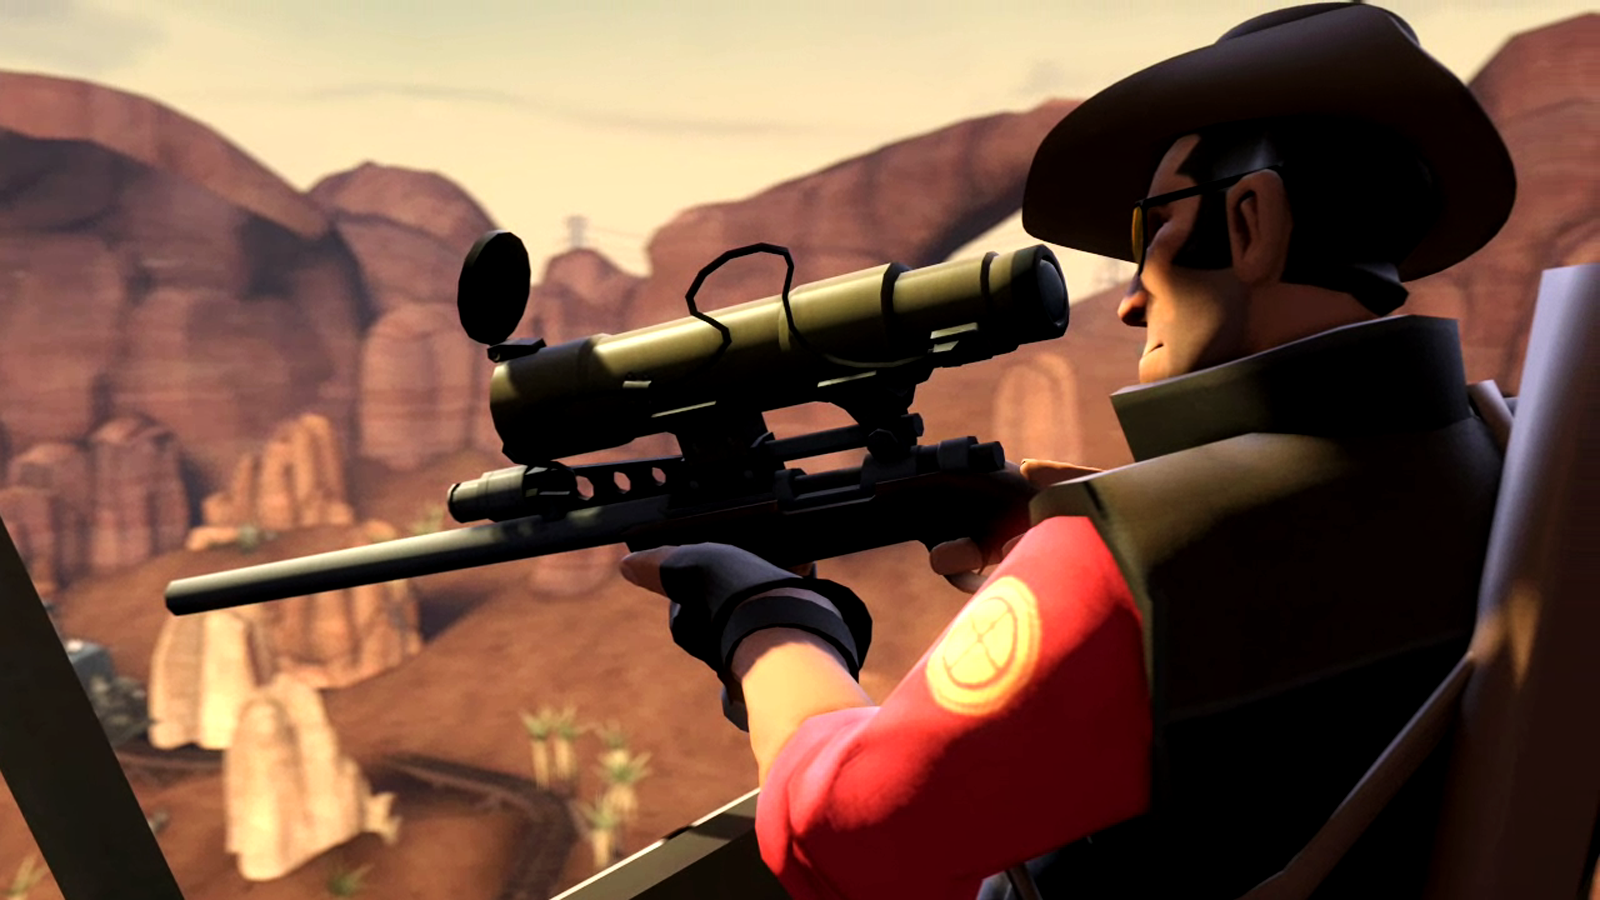 Best Wallpapers For Iphone 6 Hd Wallpaper Team Fortress 2 Wallpaper